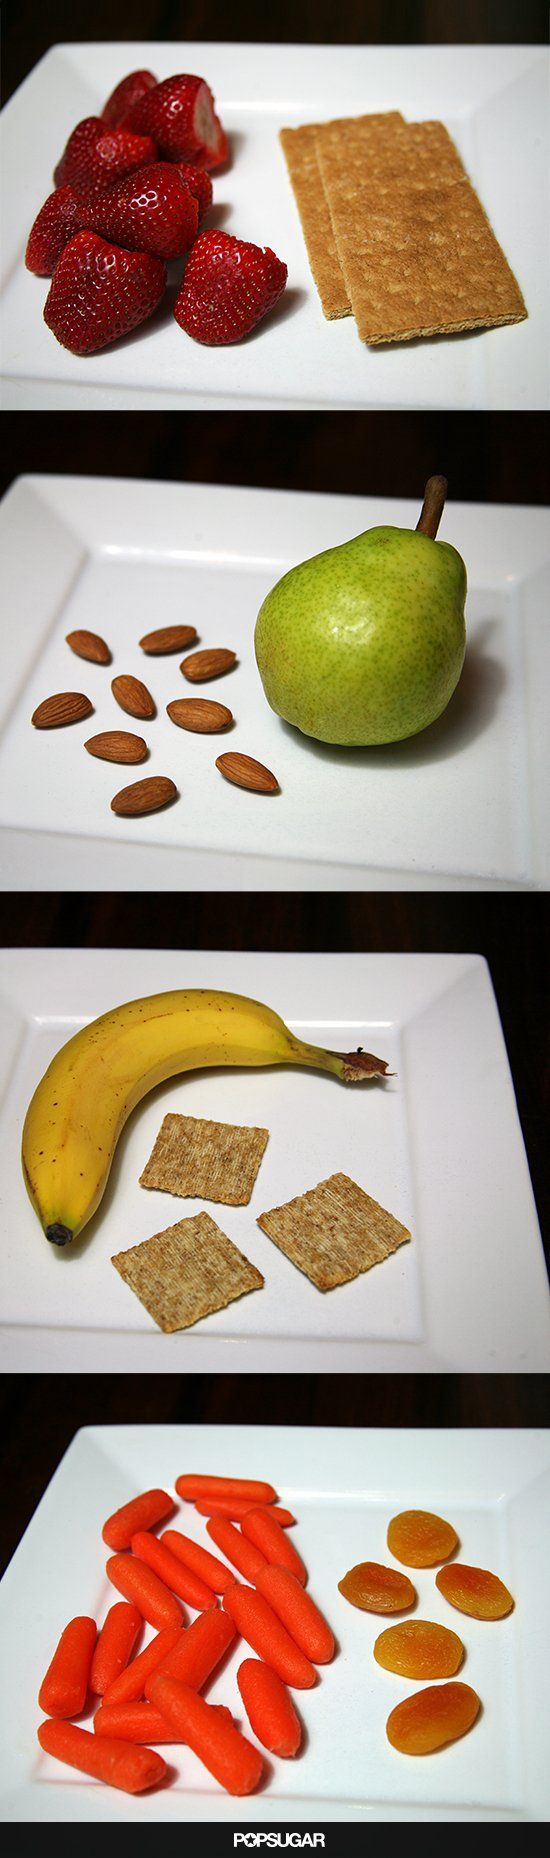 150-Calorie Snack Packs Perfect For Traveling